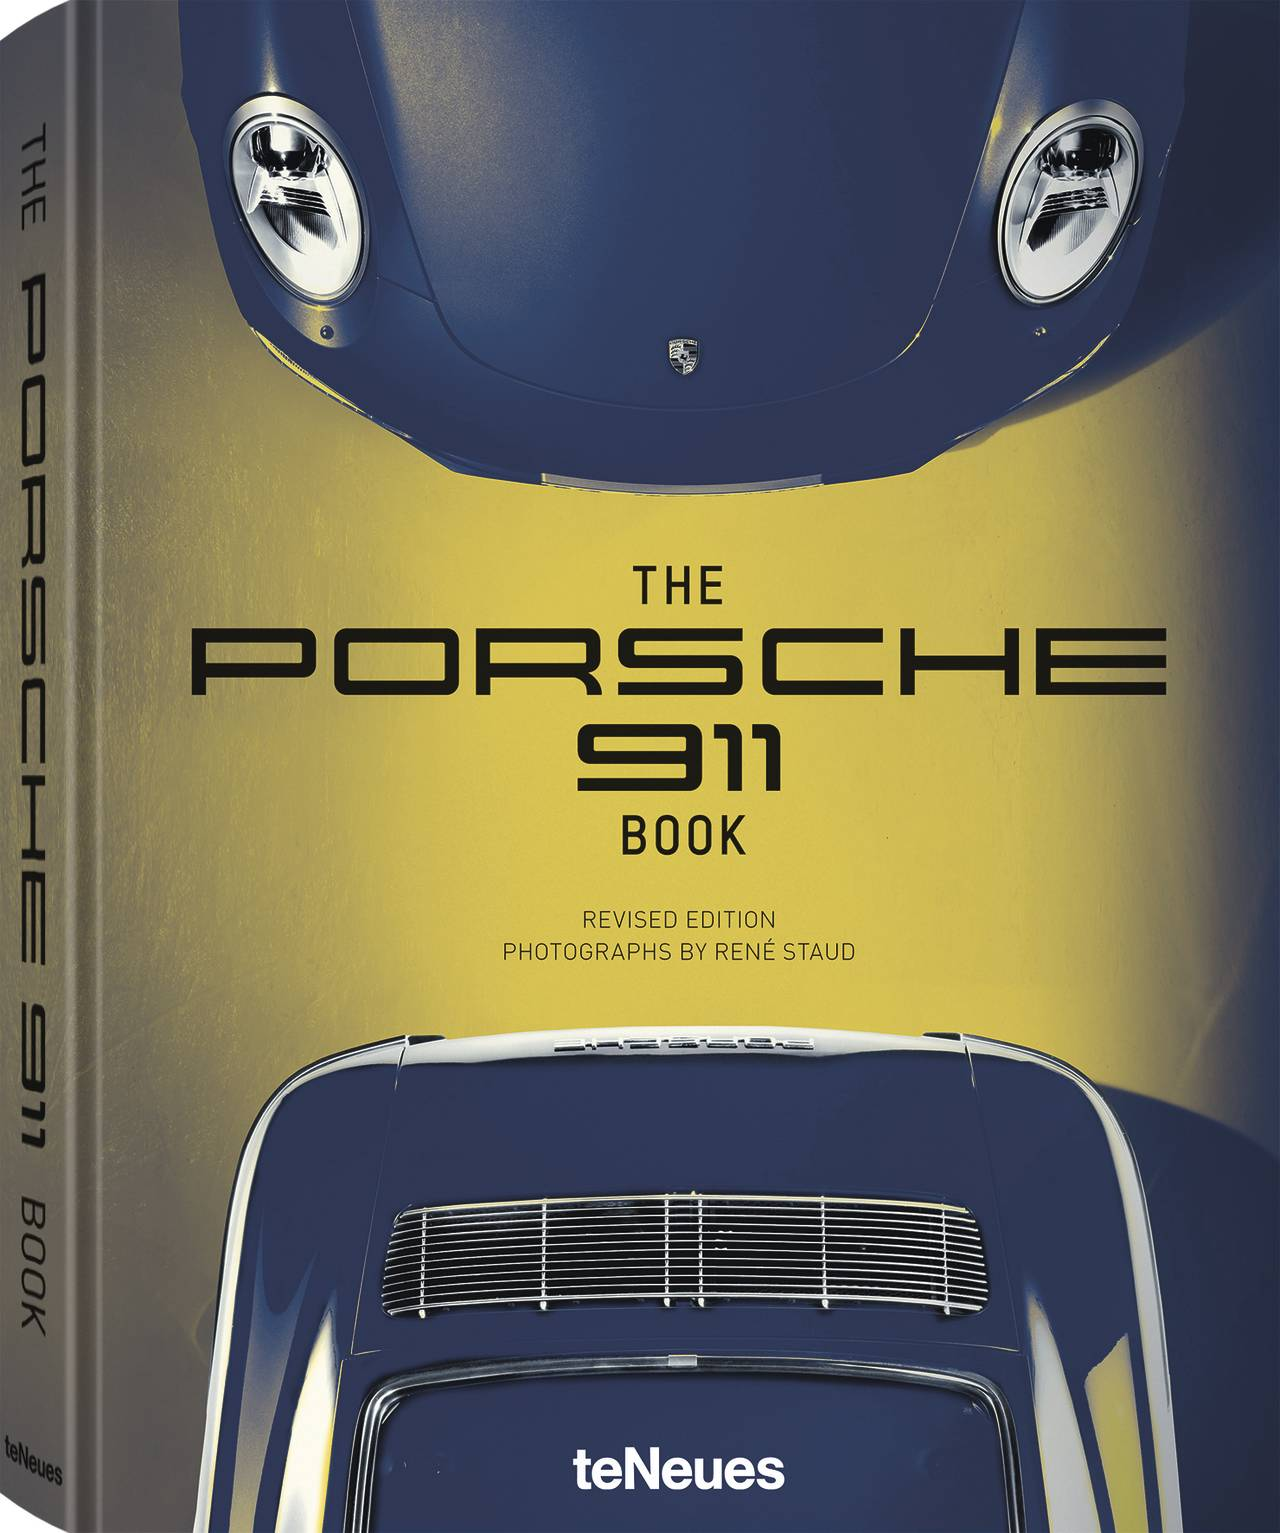 © The Porsche 911 Book, Revised Edition, Photographs by René Staud, published by teNeues, www.teneues.com. Photo © 2018 Staud Studios GmbH, Leonberg, Germany. All rights reserved. www.staudstudios.com